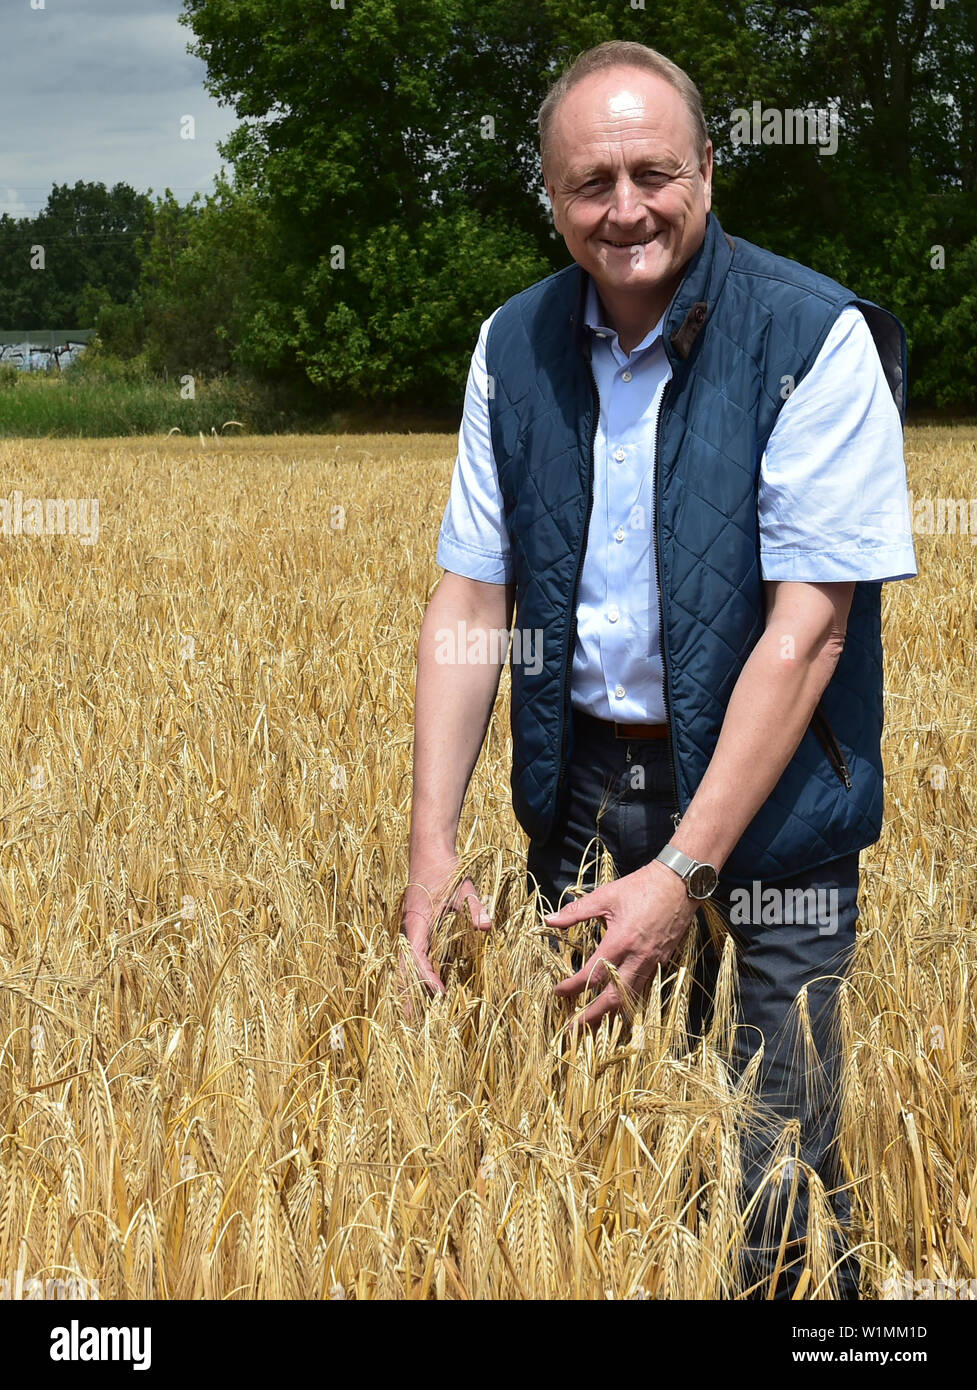 03 July 2019, Brandenburg, Dallgow-Döberitz: Joachim Rukwied, President of the German Farmers' Association, examines the quality of winter barley on a Brandenburg farm at the press conference to start the harvest. Due to late frosts and drought, large harvest losses are expected. Photo: Bernd Settnik/dpa-Zentralbild/dpa - Stock Image